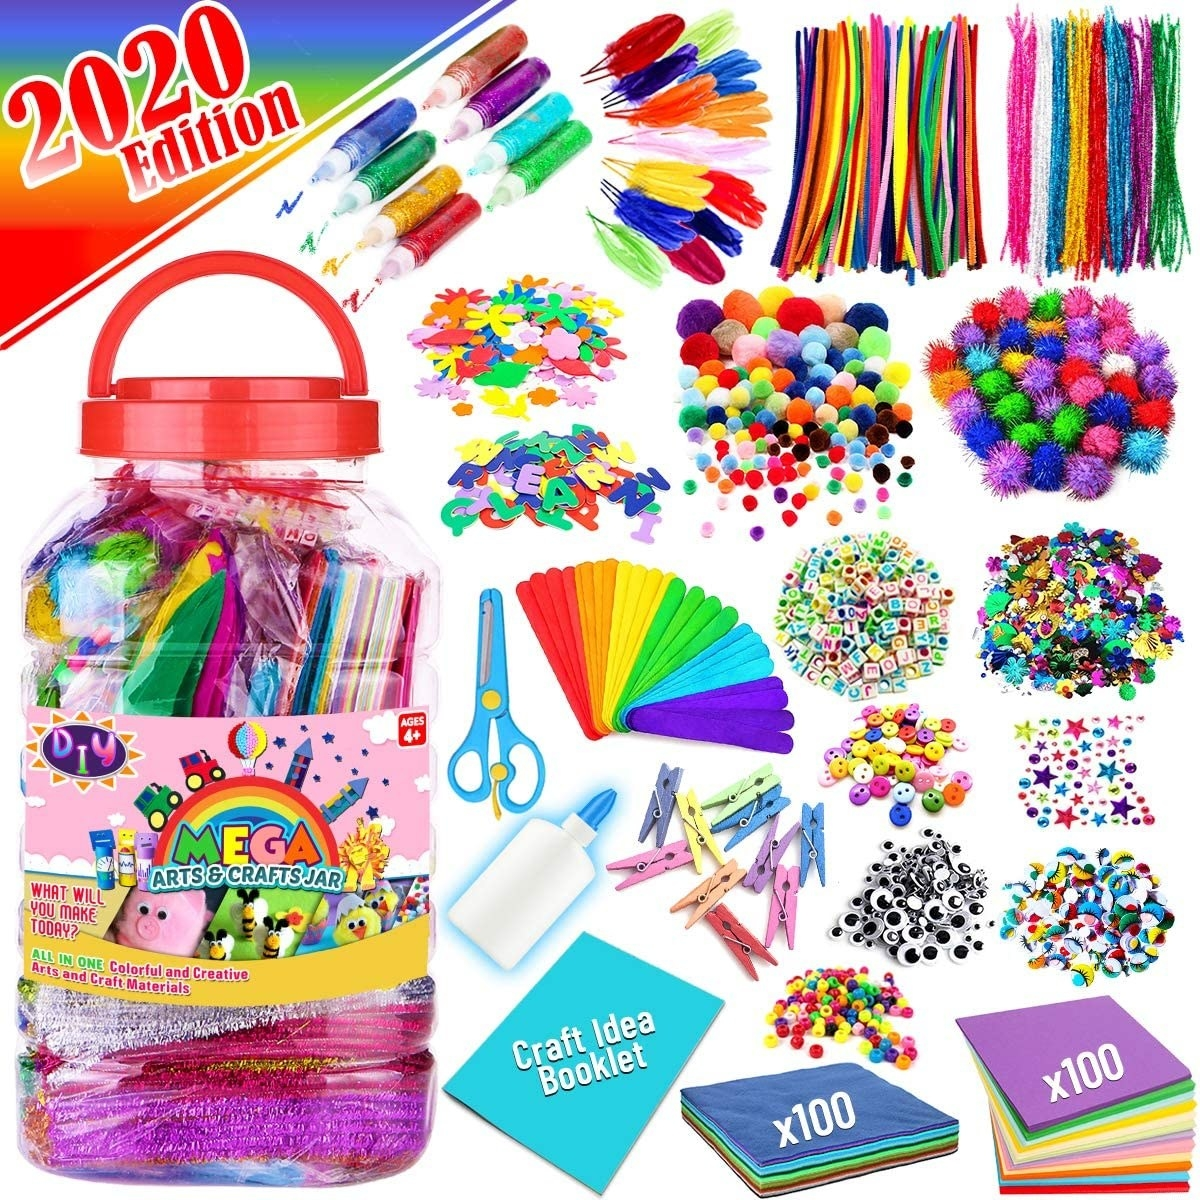 A large plastic jar filled with colorful craft supples, like pipe cleaners, pom poms, popsicle sticks, and felt.